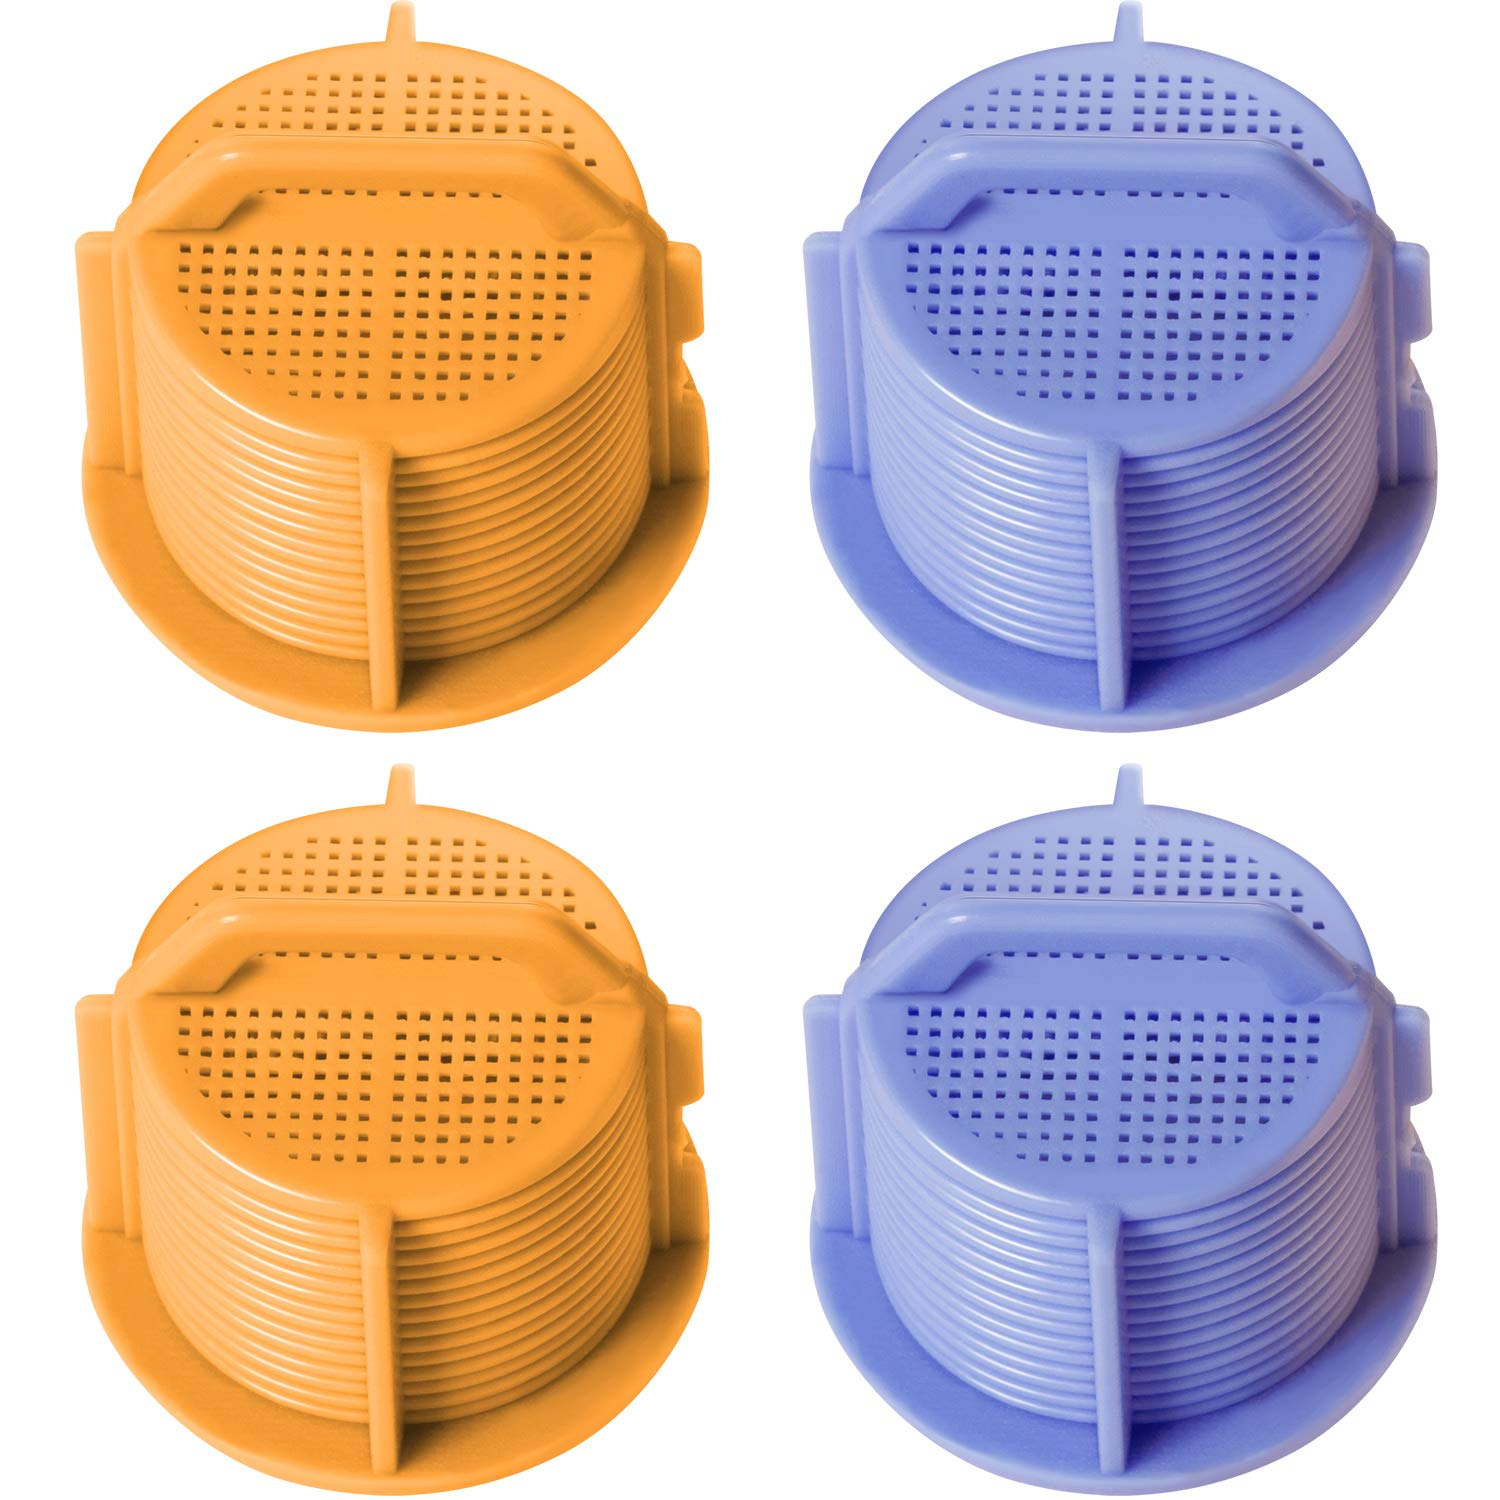 Jetec 4 Pieces AGM73269501 Washing Machine Inlet Valve Filter Screen Compatible with LG